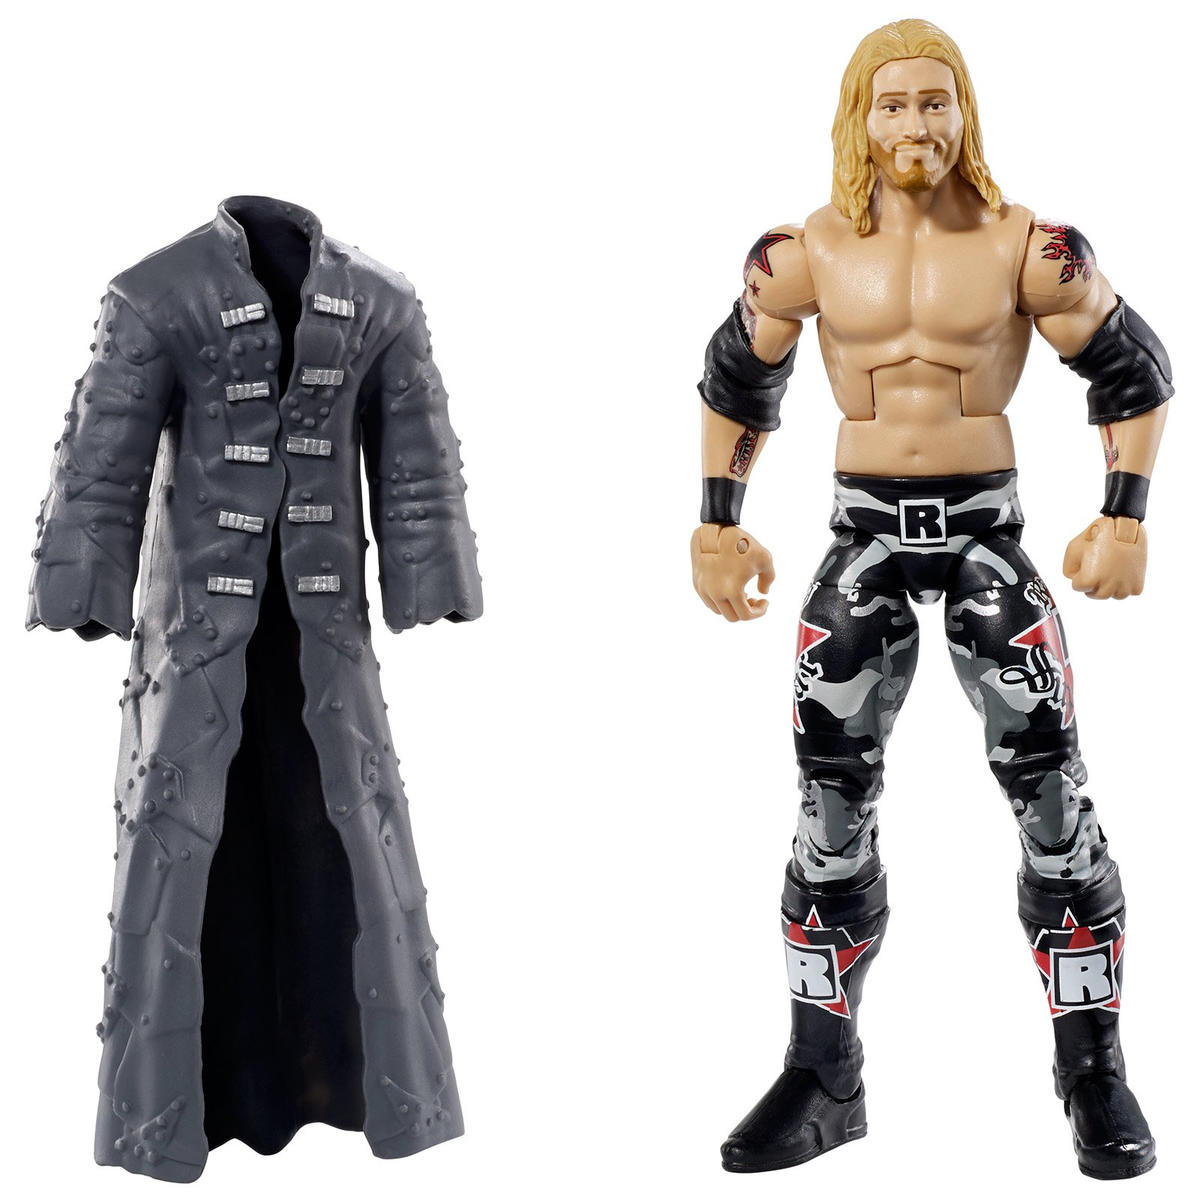 Edge, in his fan-favorite camouflage ring attire (WWE Hall of Fame Class of 2012)